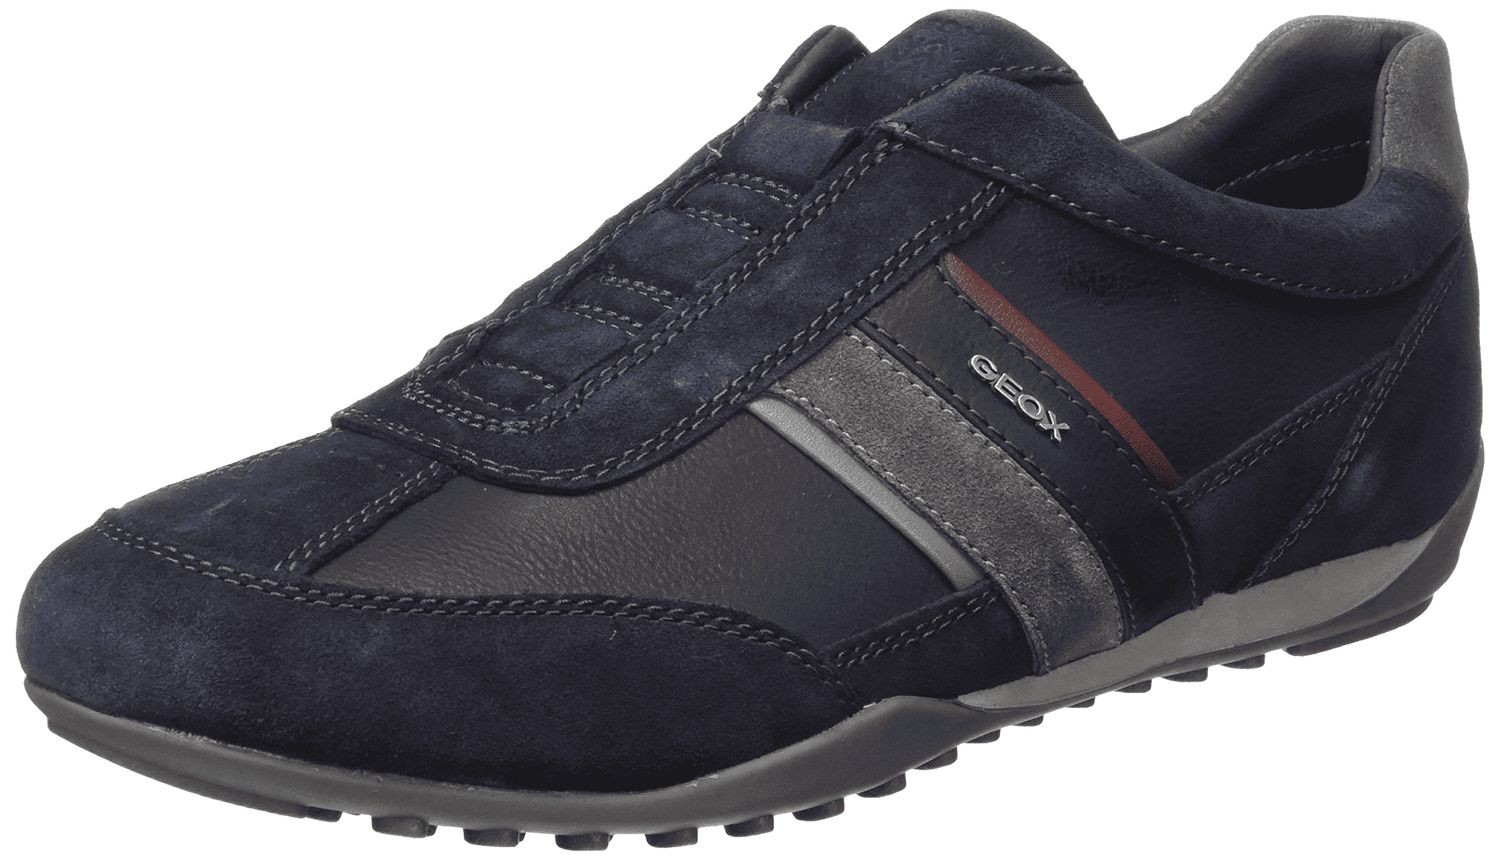 100% kvalitet billigt pris på fötter kl Geox Respira Men's u Wells a Low Top Trainers Slipper Shoes U82T5A ...